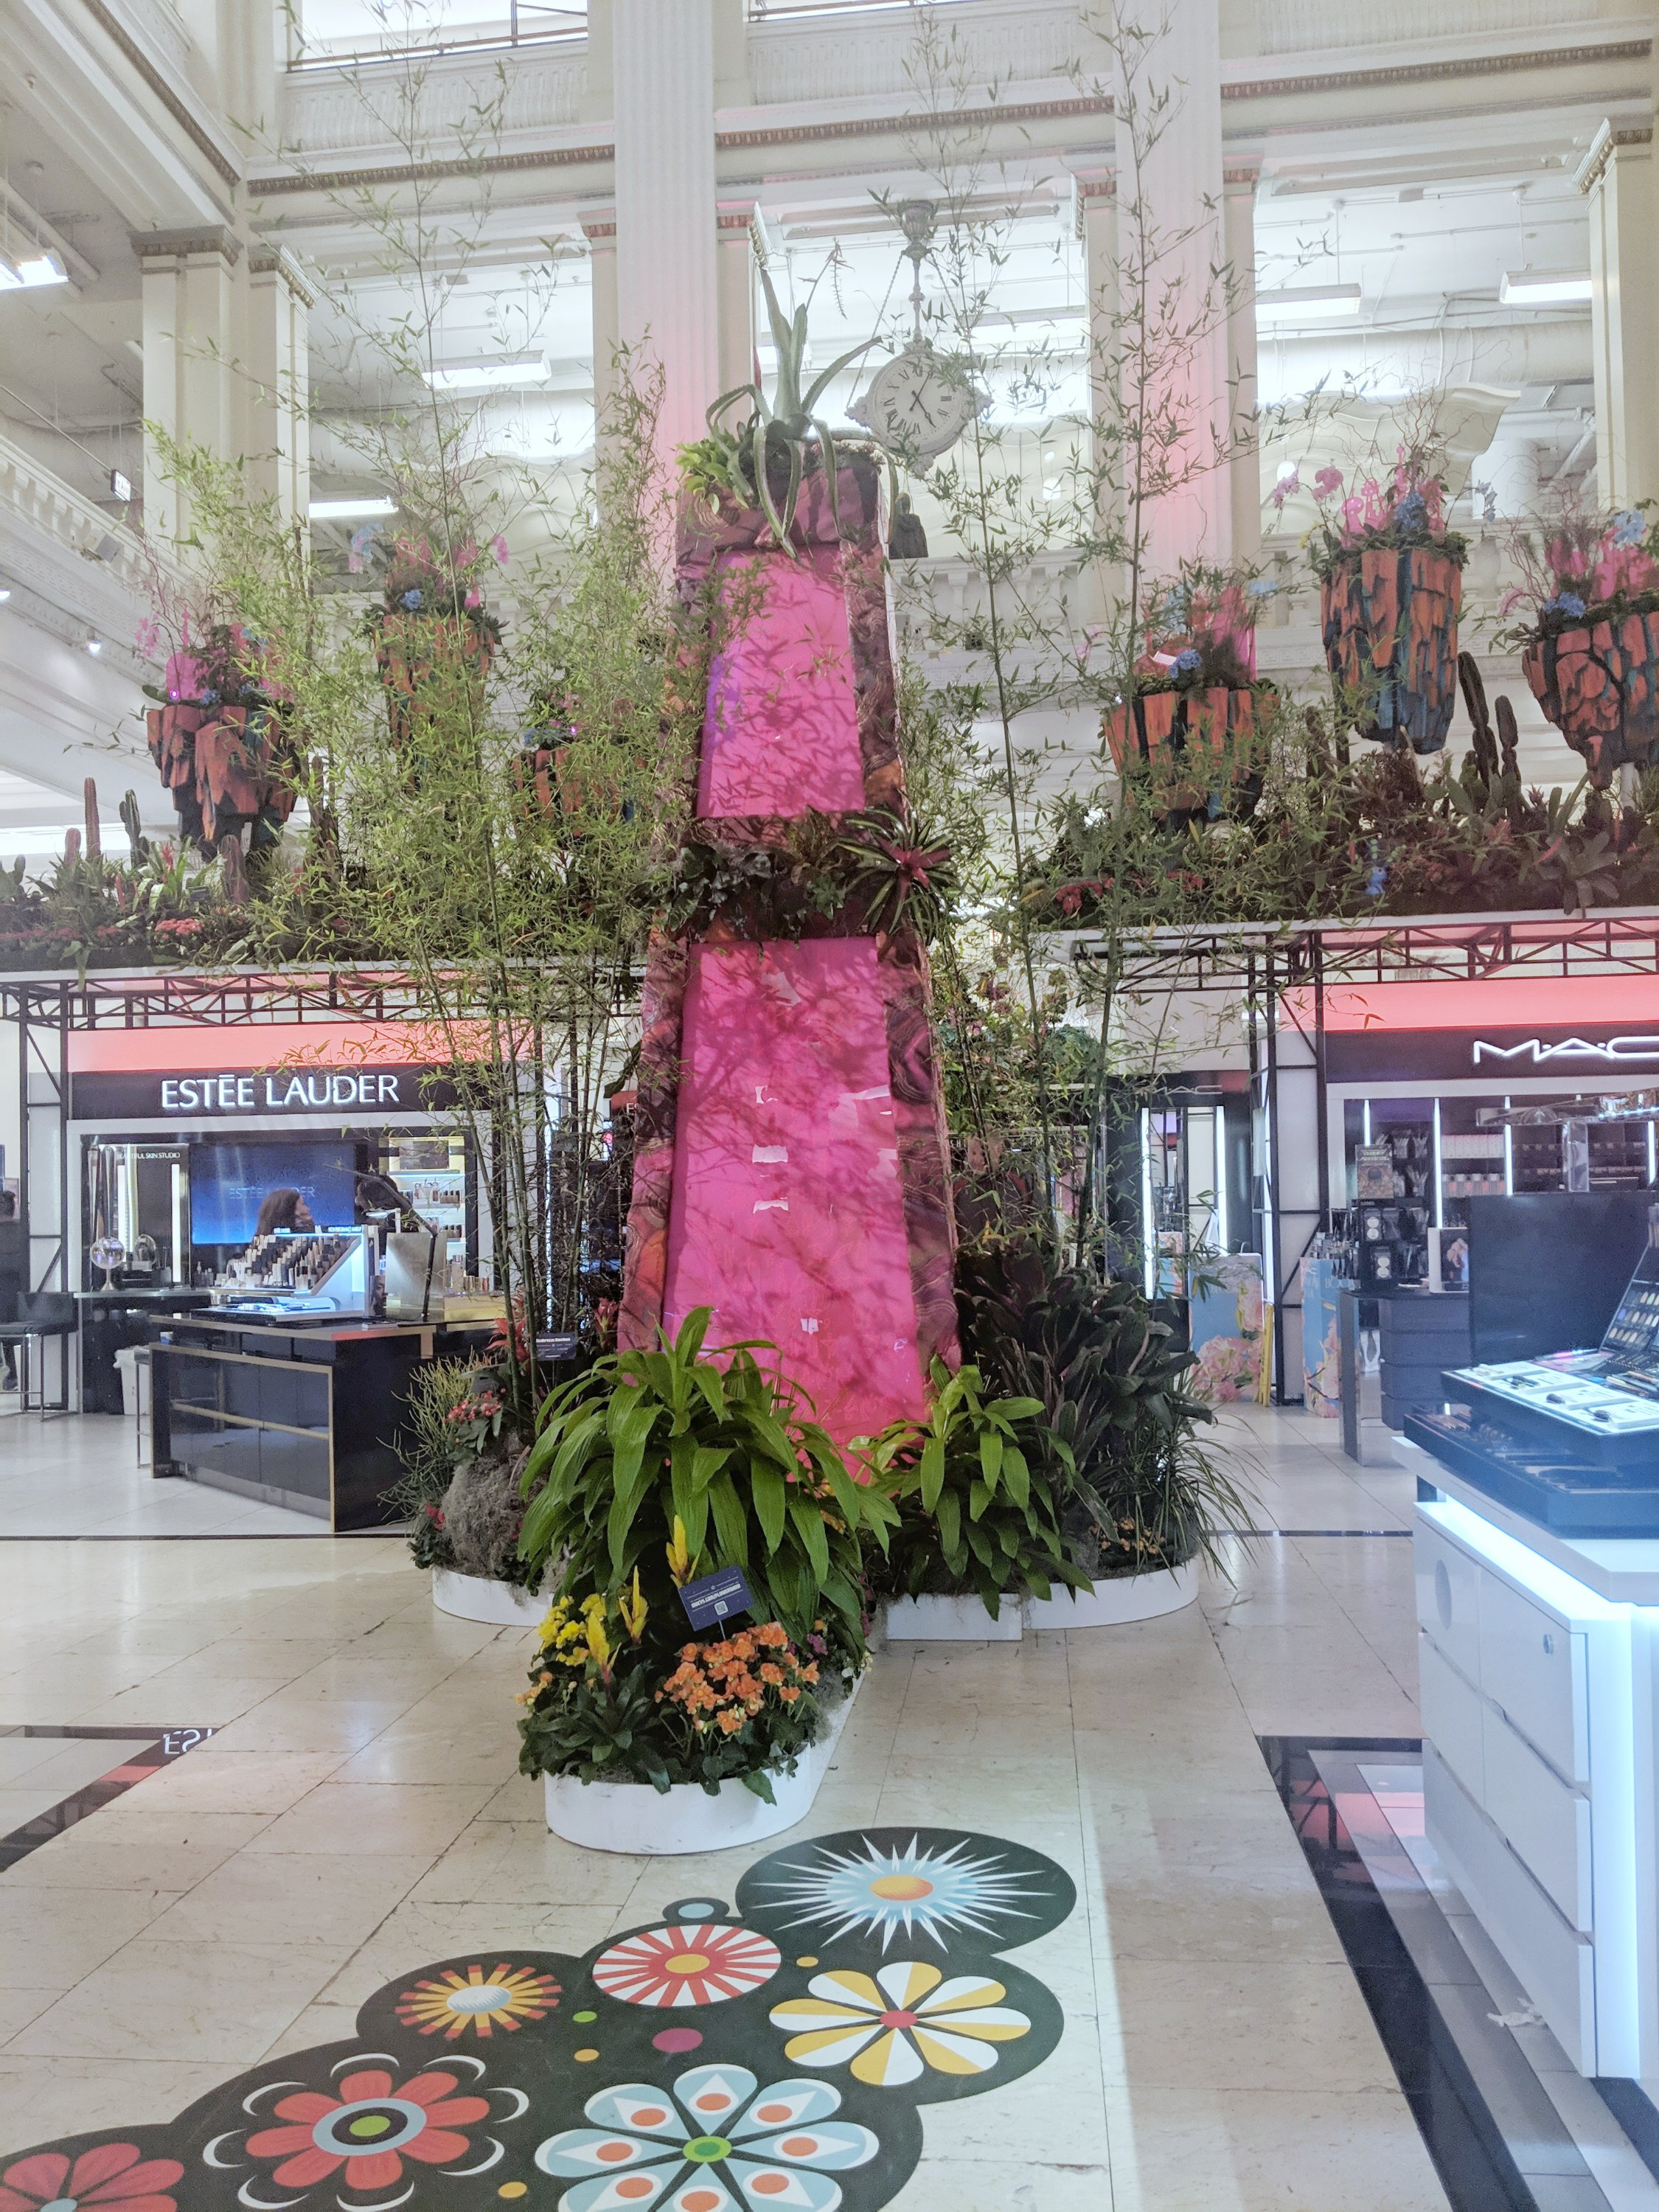 macy's flower show chicago state st 2019